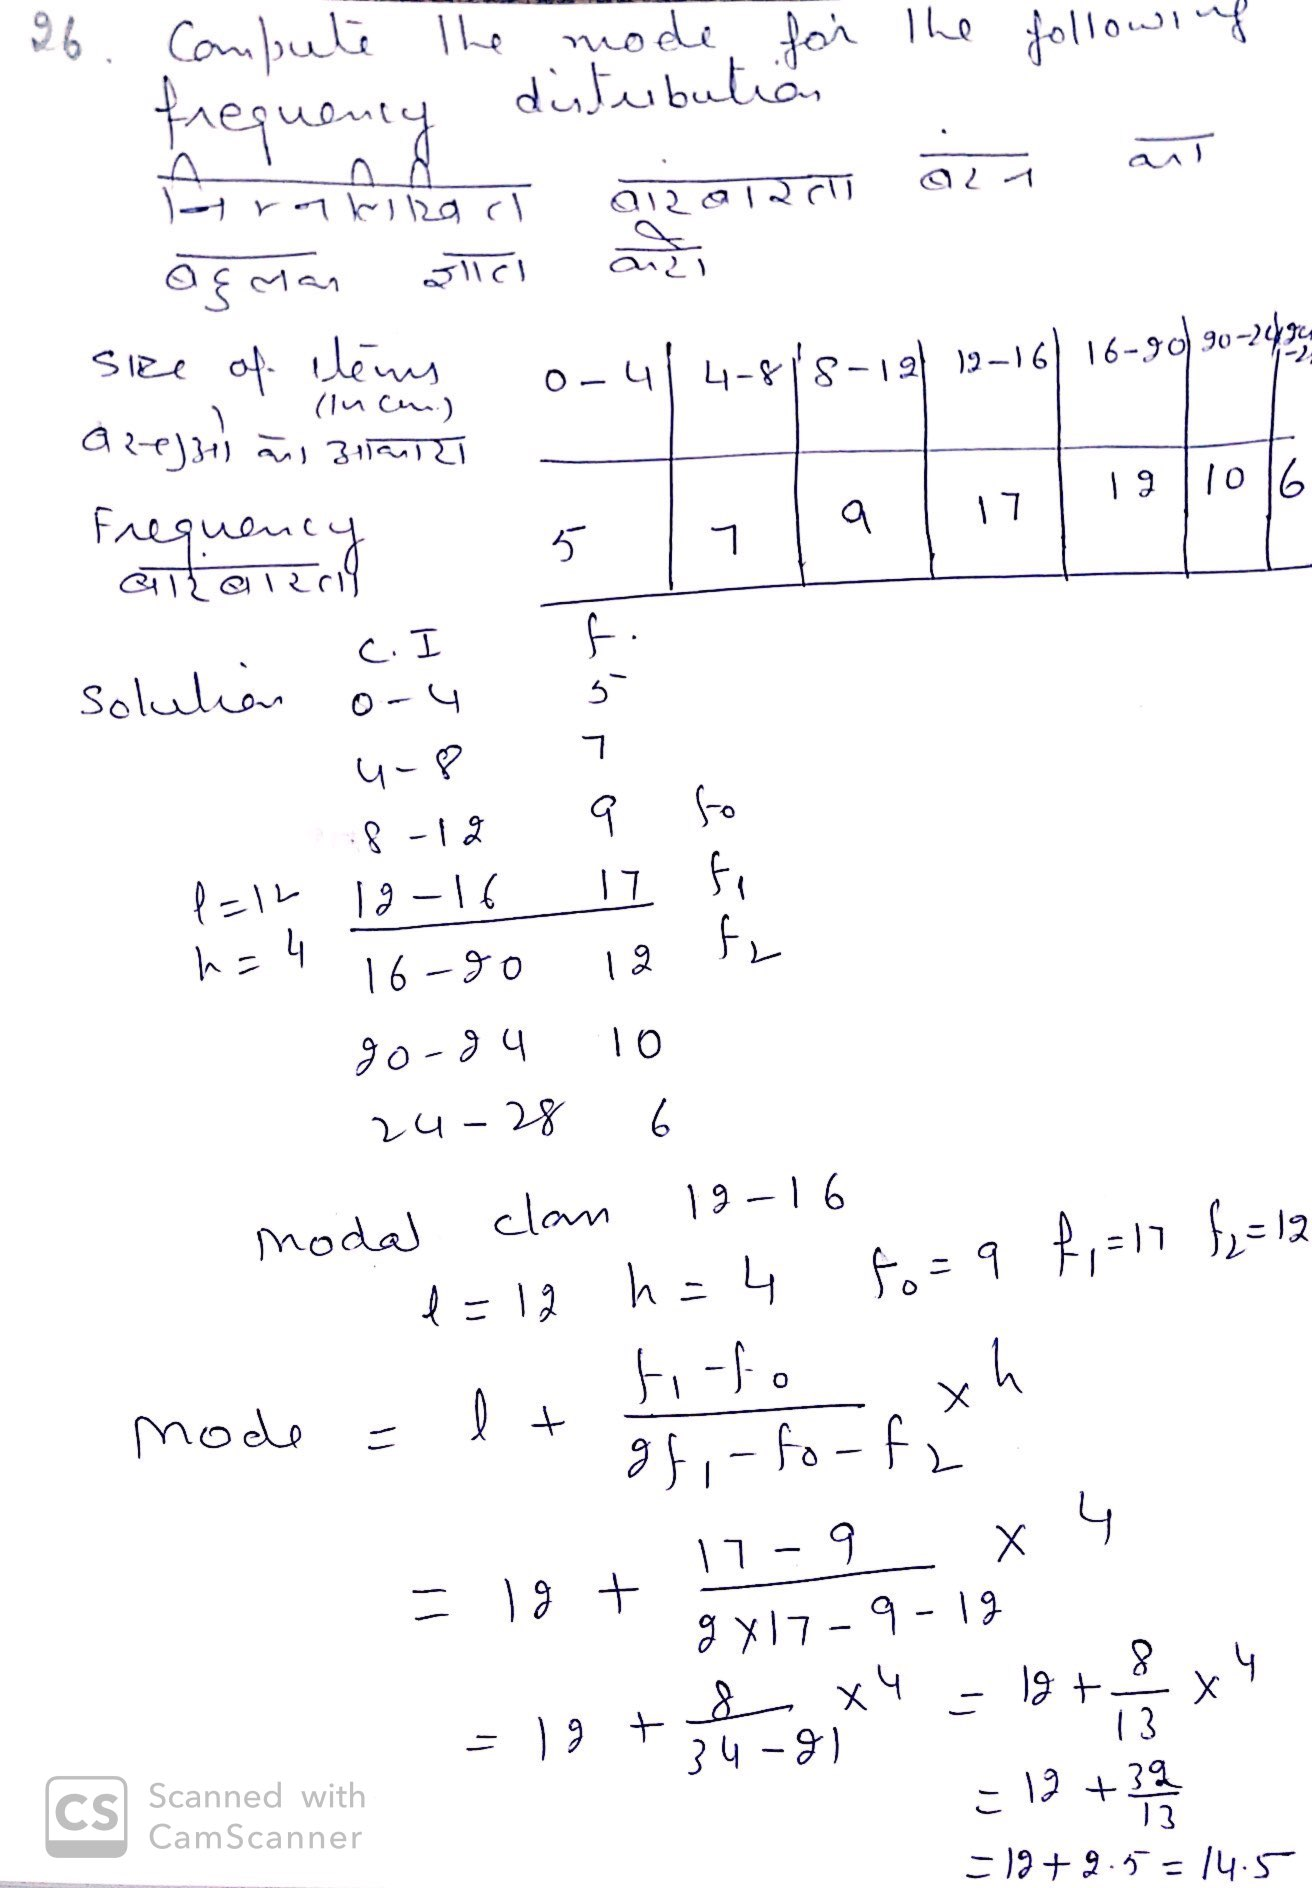 cbse previous year question papers class 10 maths with solutions